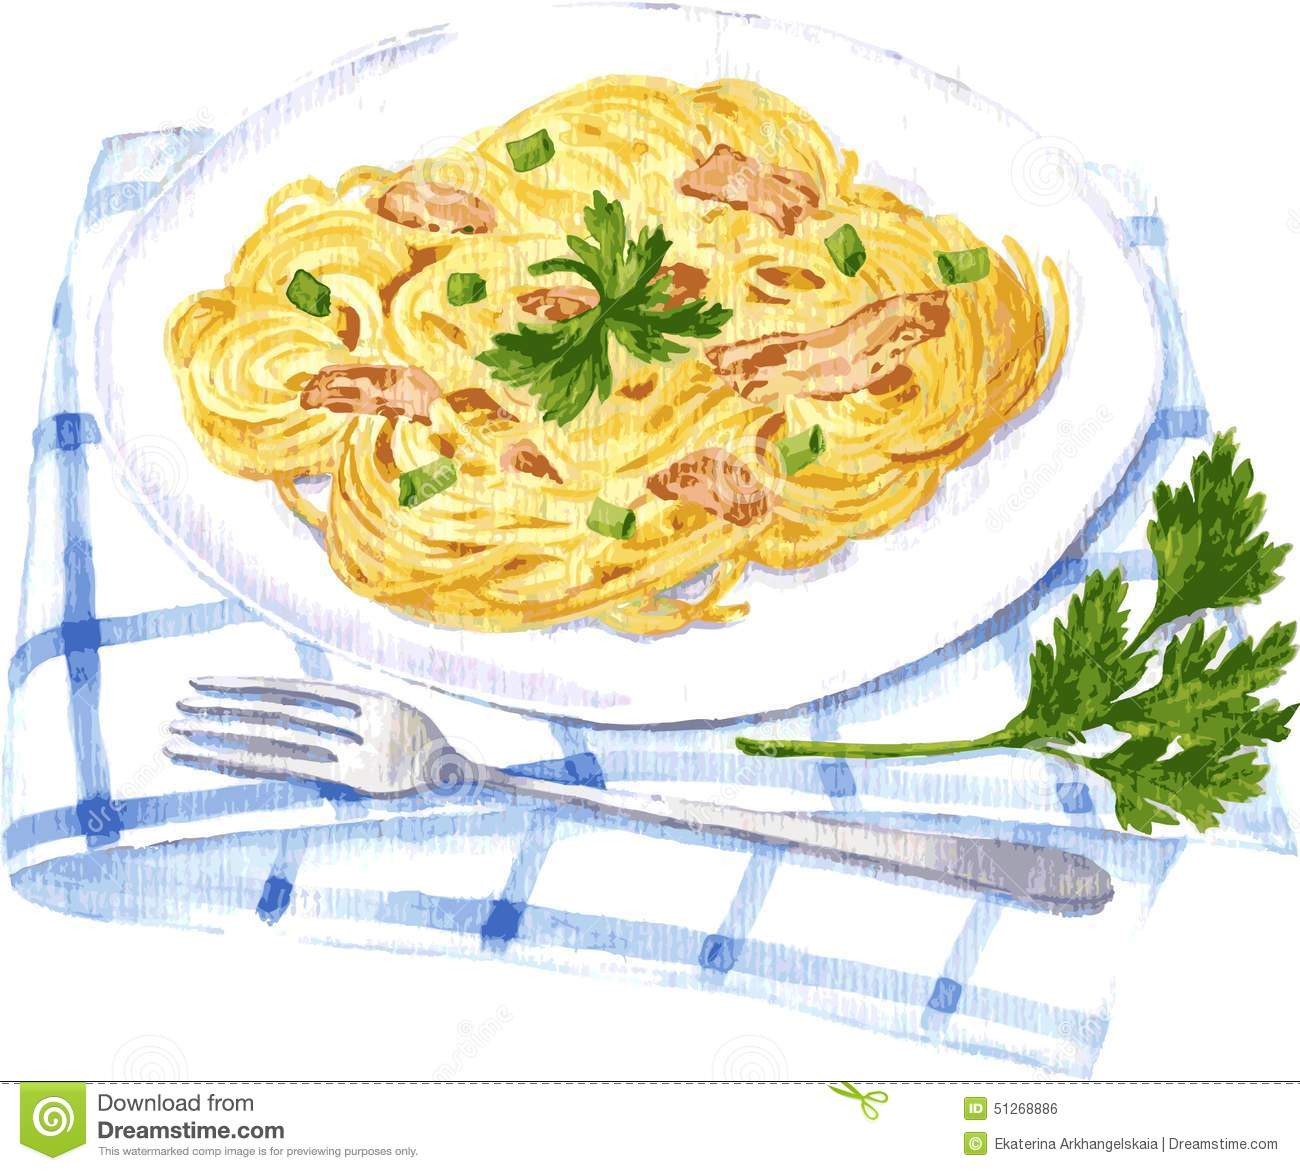 how to cook carbonara sauce filipino style